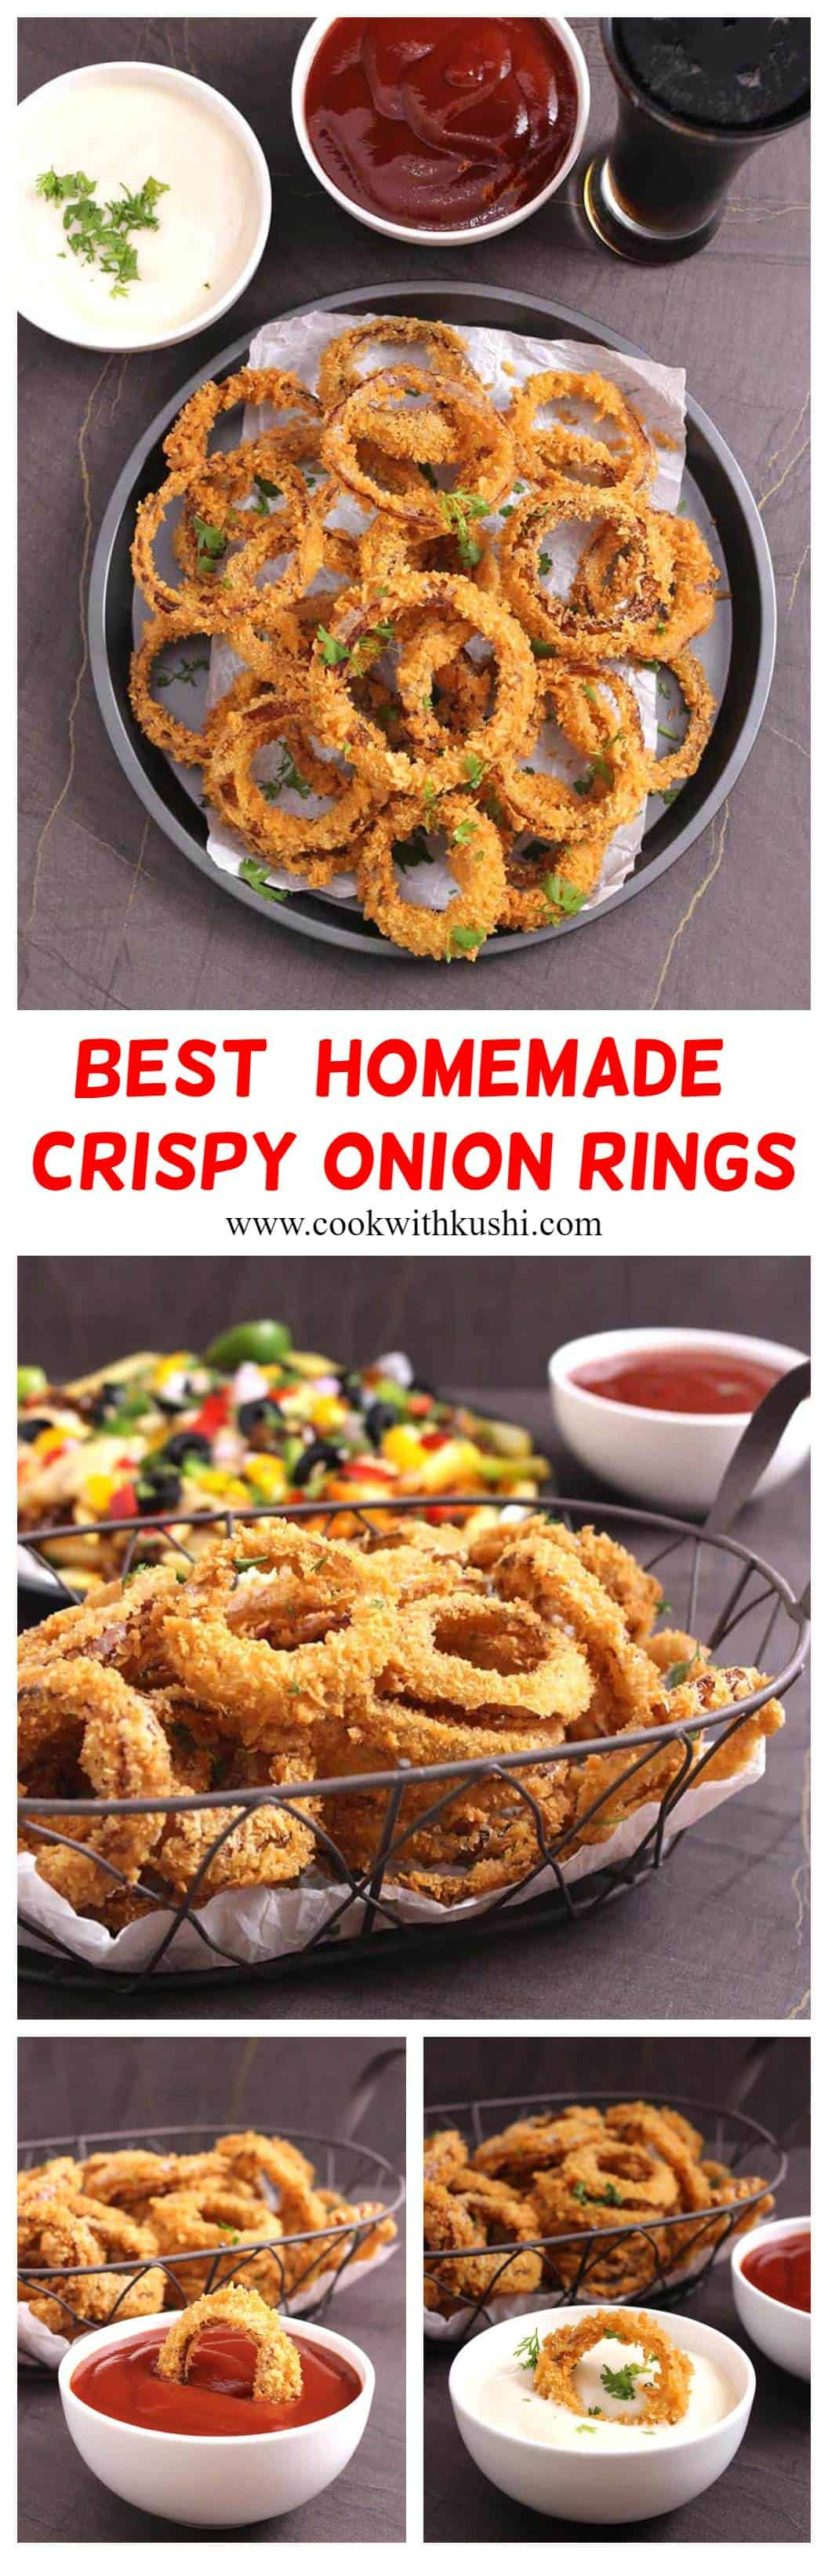 This recipe will give you the best homemade crispy onion rings ever!! The recipe below ensures that your onion rings are perfectly crispy every single time and never turns soggy. #appetizers #fingerfoods #partyrecipes #popularrecipes #onionrings #veganonionrings #airfryerrecipes #ketorecipes #superbowlfood #partyfood #footballfood #gamedayfood #gamenightfood